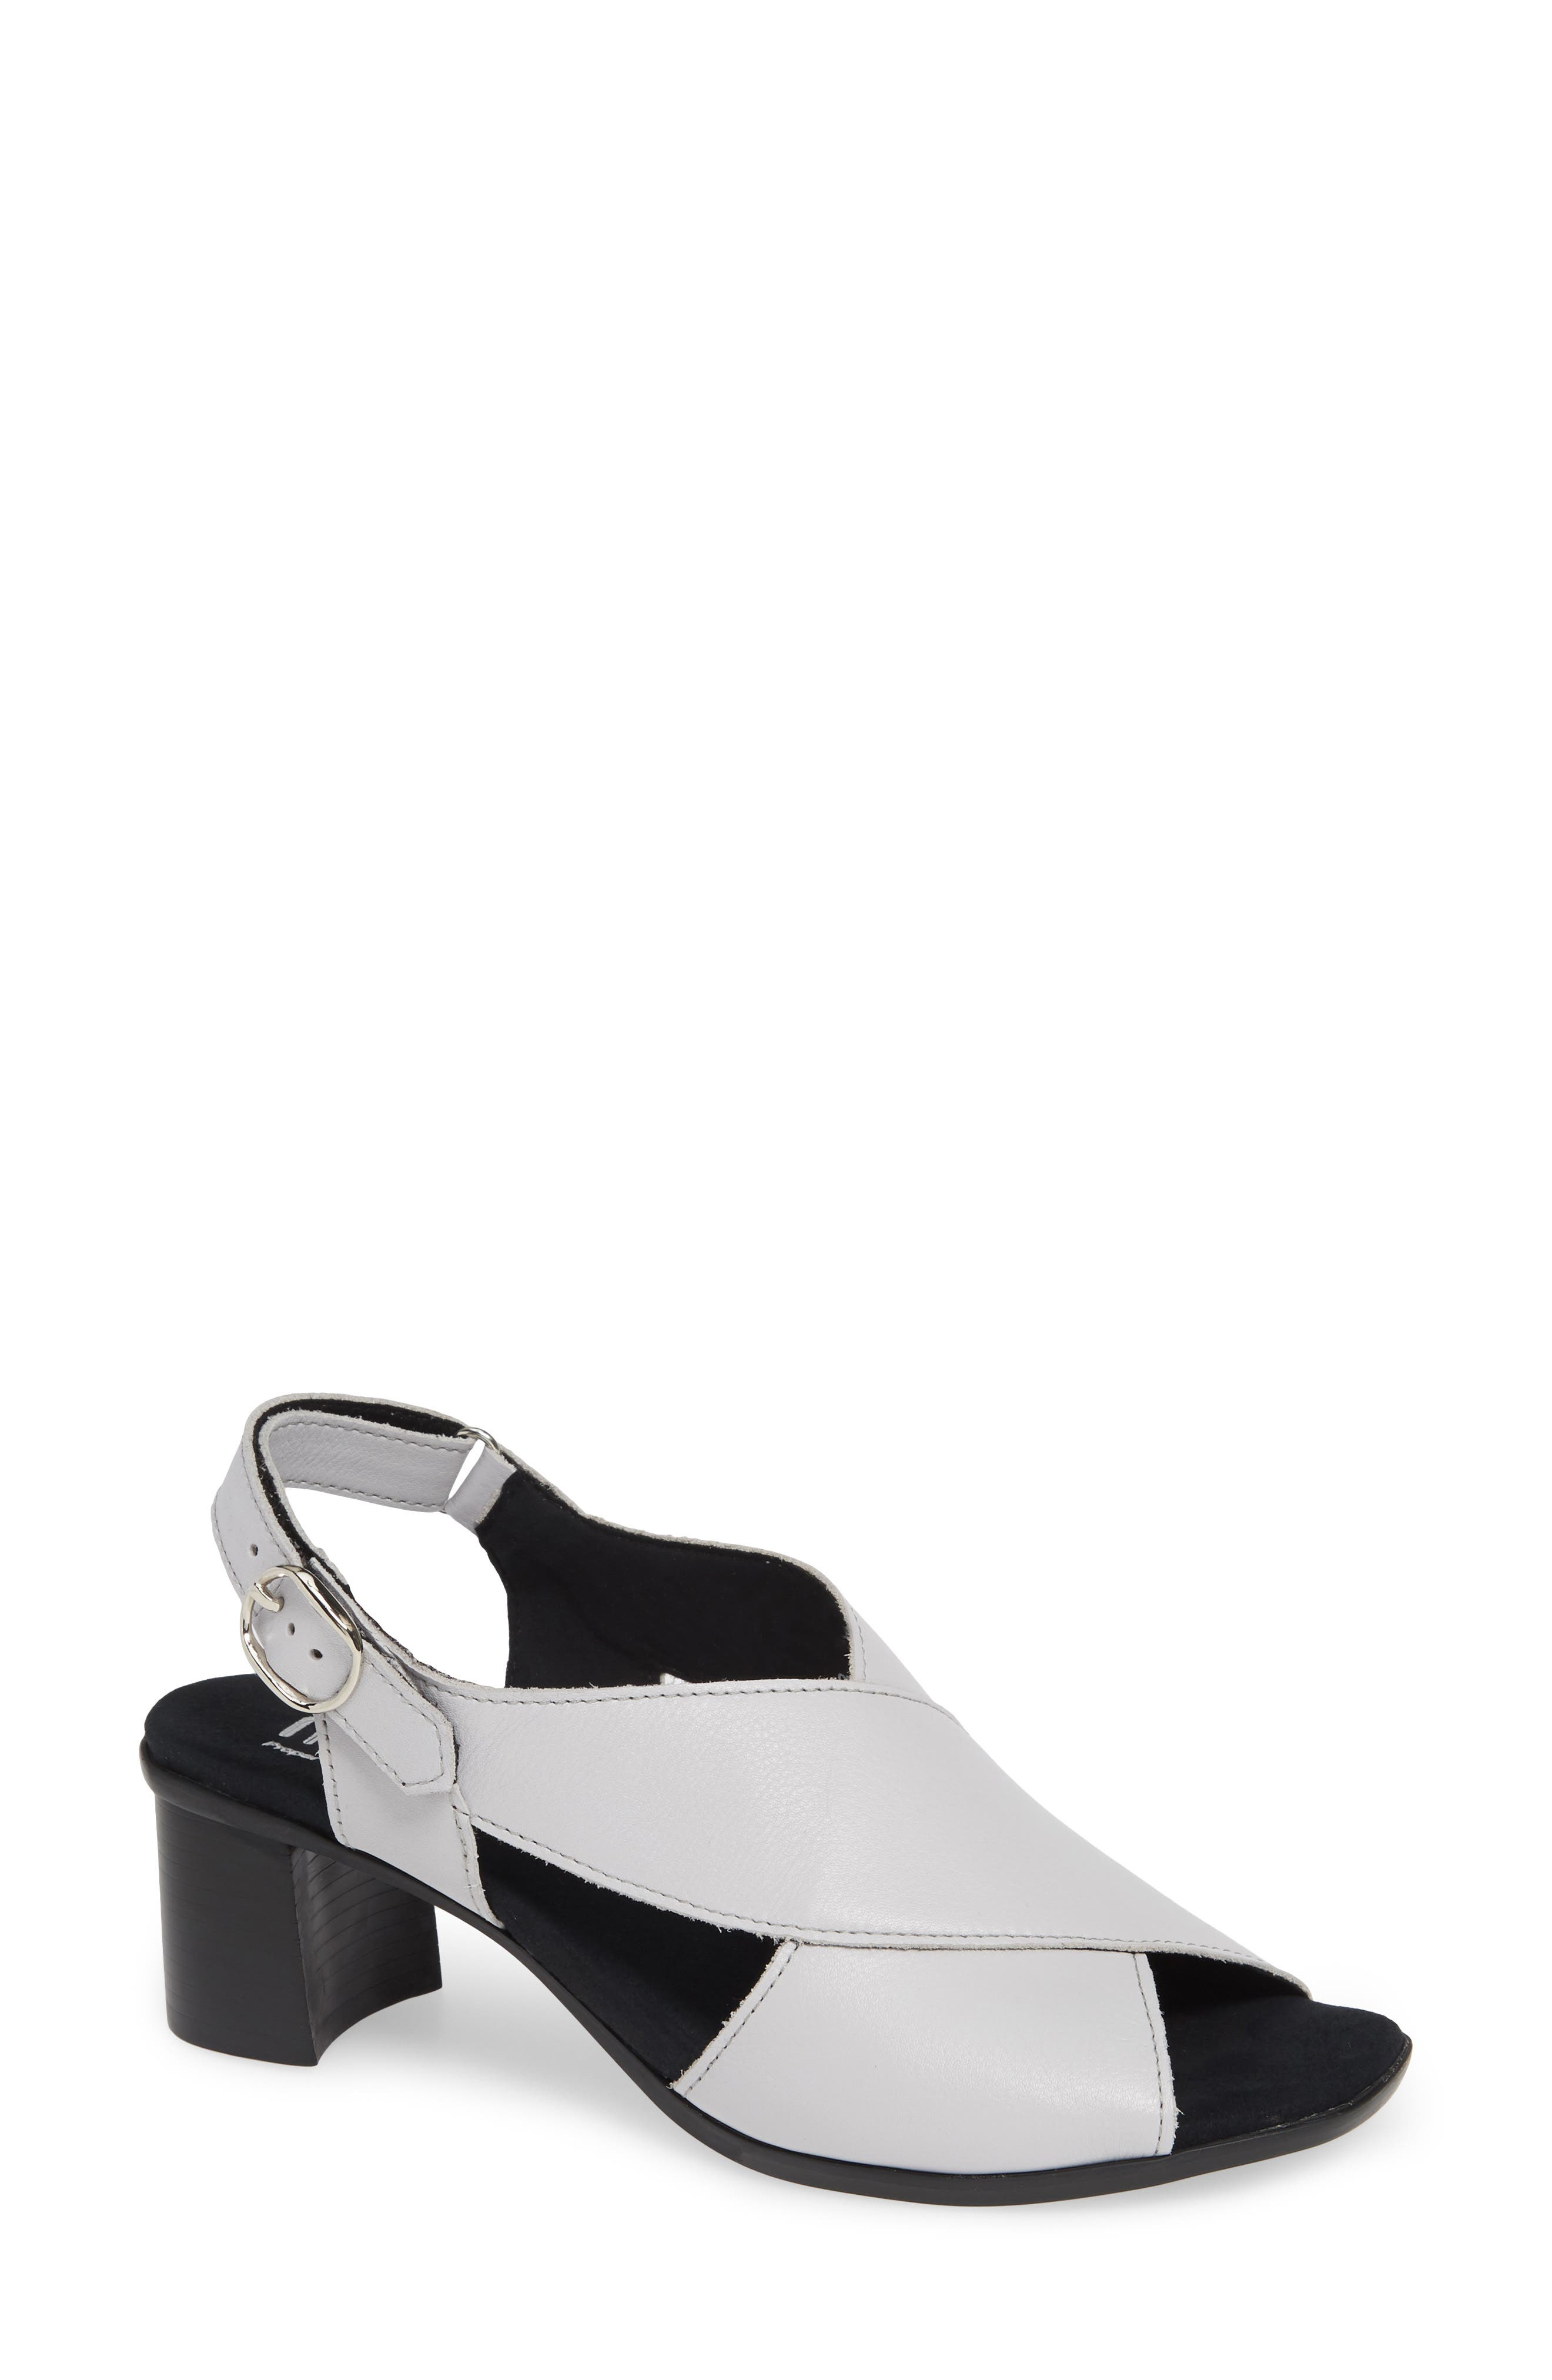 MUNRO Laine Block Heel Sandal, Main, color, WHITE LEATHER